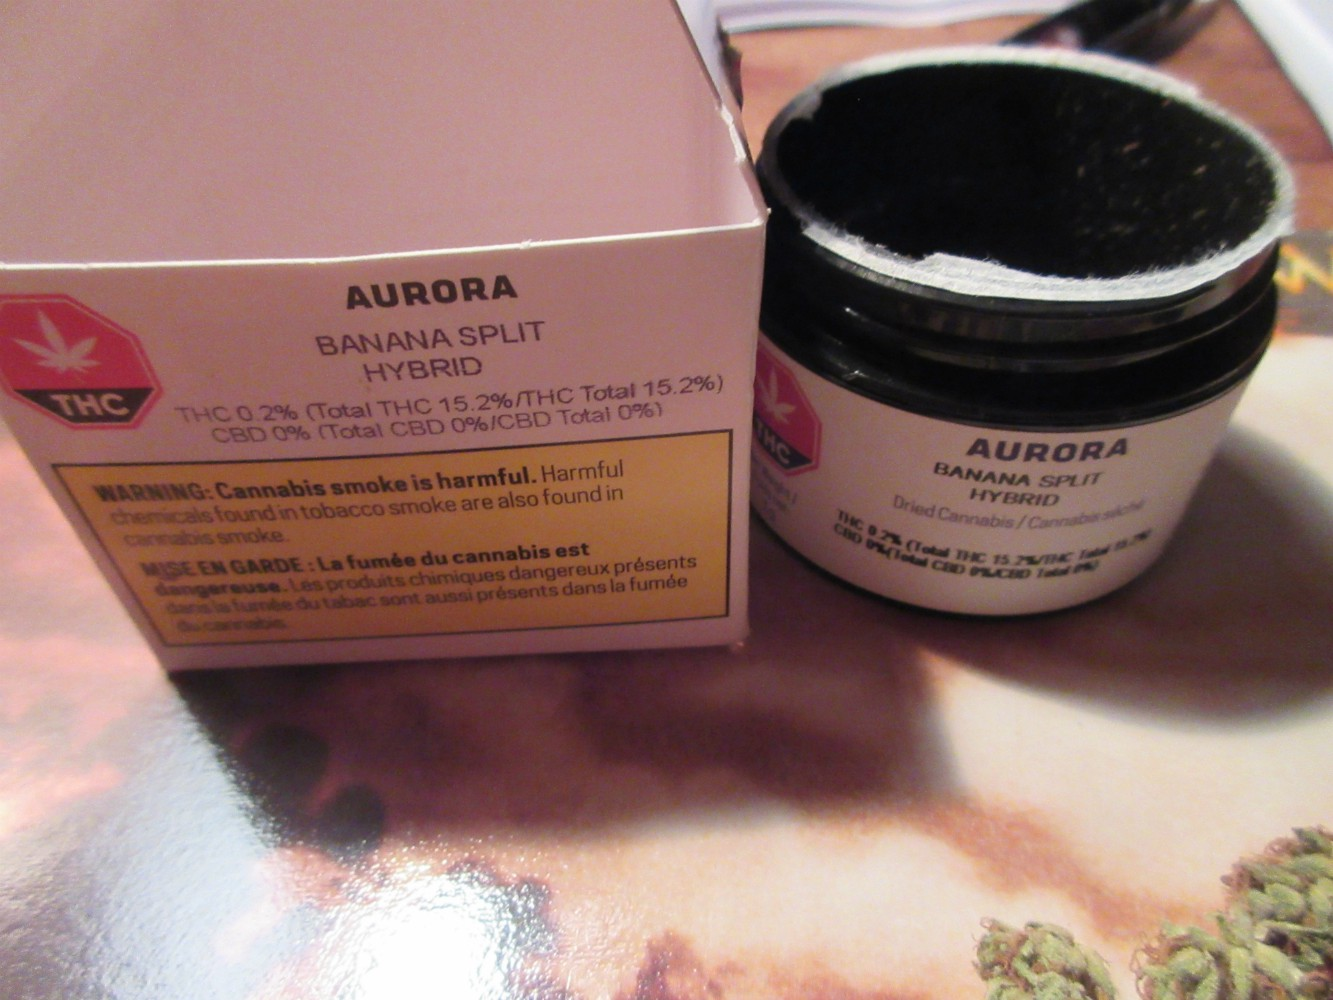 Banana Split by Aurora Review (Hybrid) - Tim Boucher - Medium